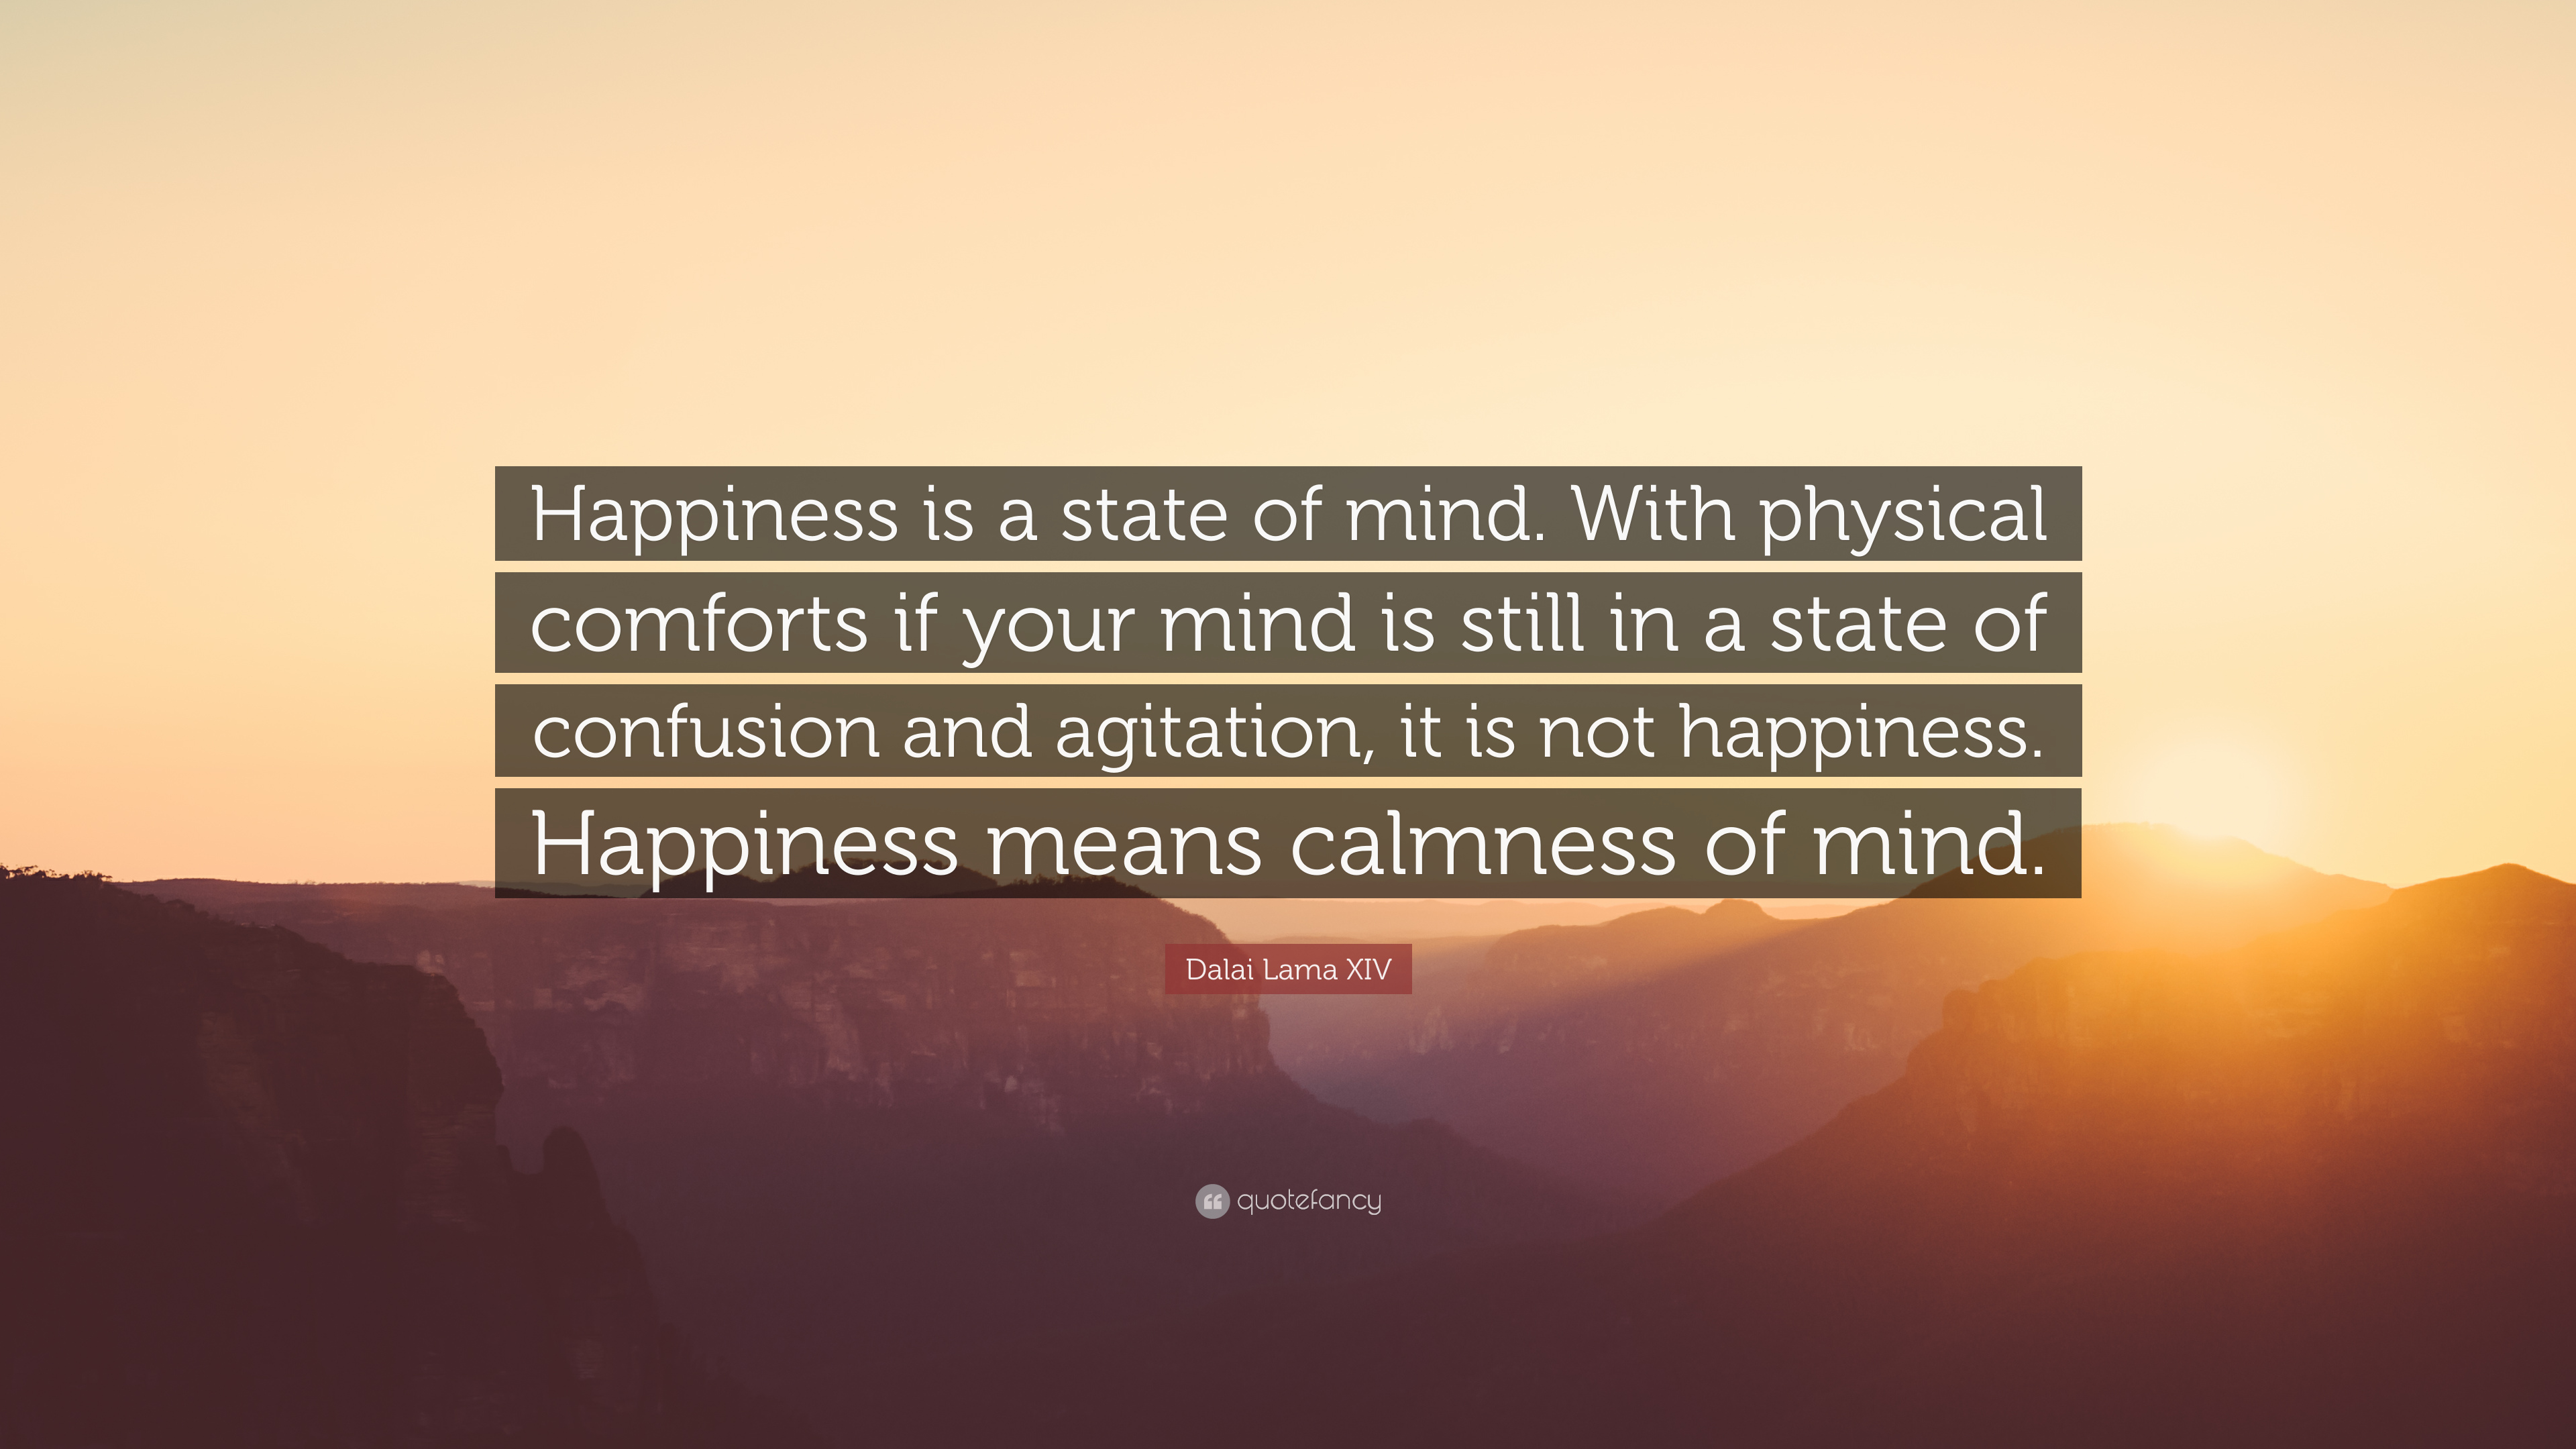 Dalai Lama Xiv Quote Happiness Is A State Of Mind With Physical